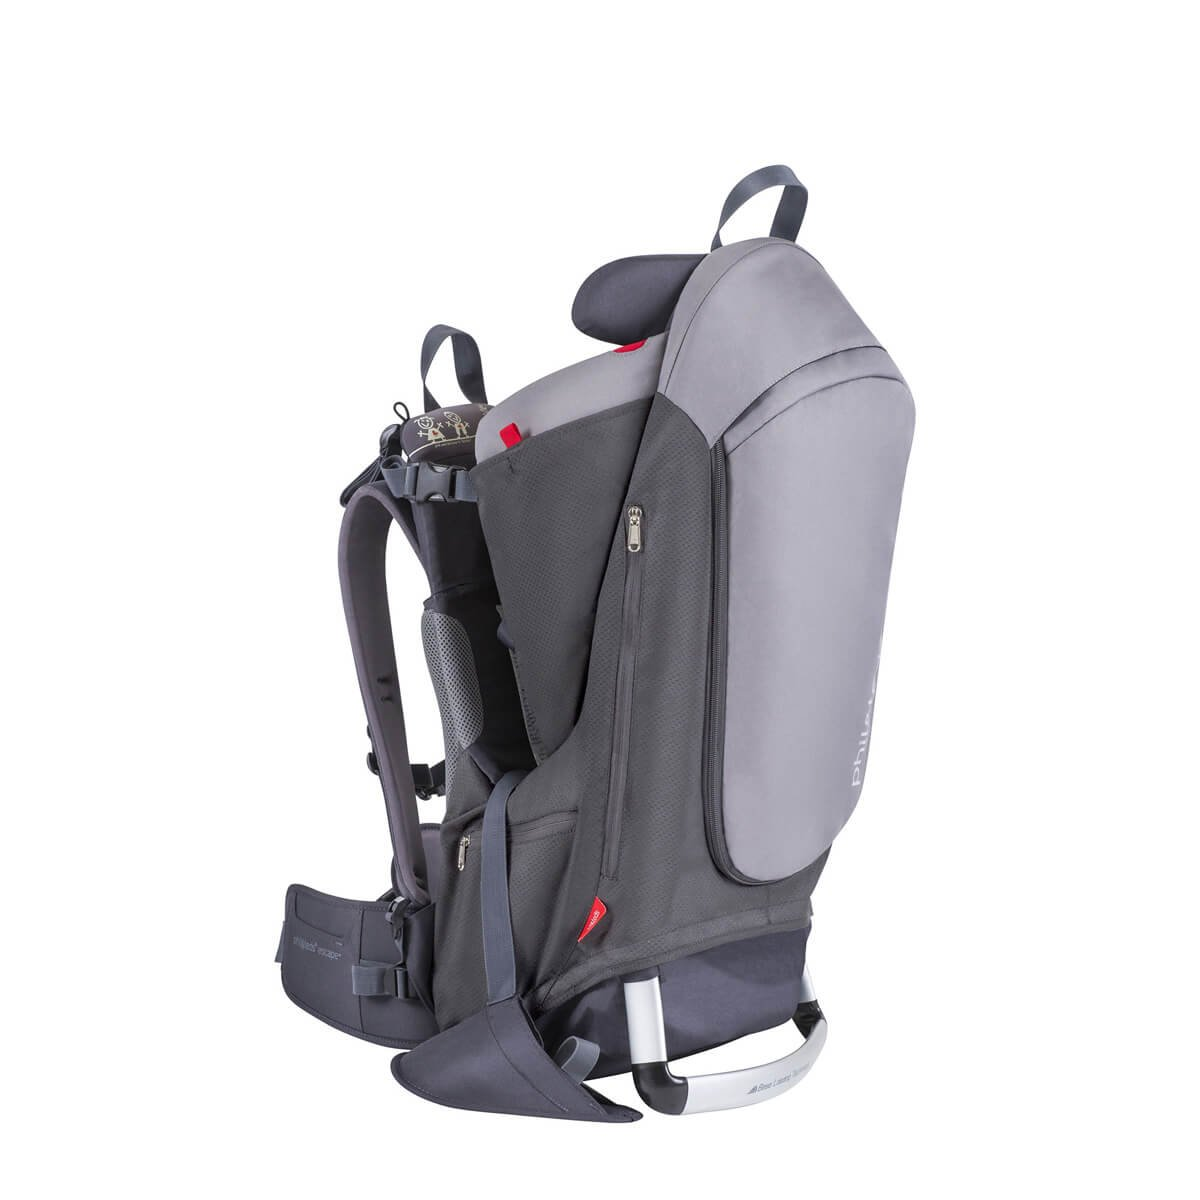 phil&teds Escape Baby Carrier, Charcoal/Charcoal